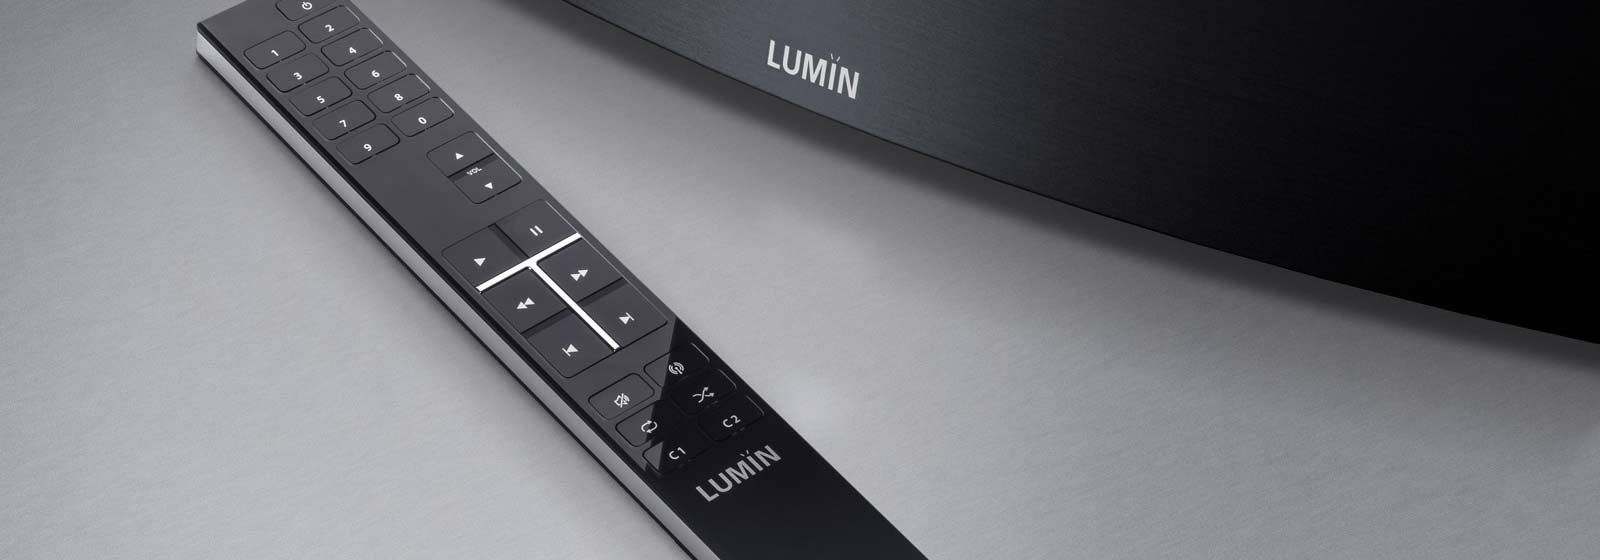 Lumin-Infra-red-control-package